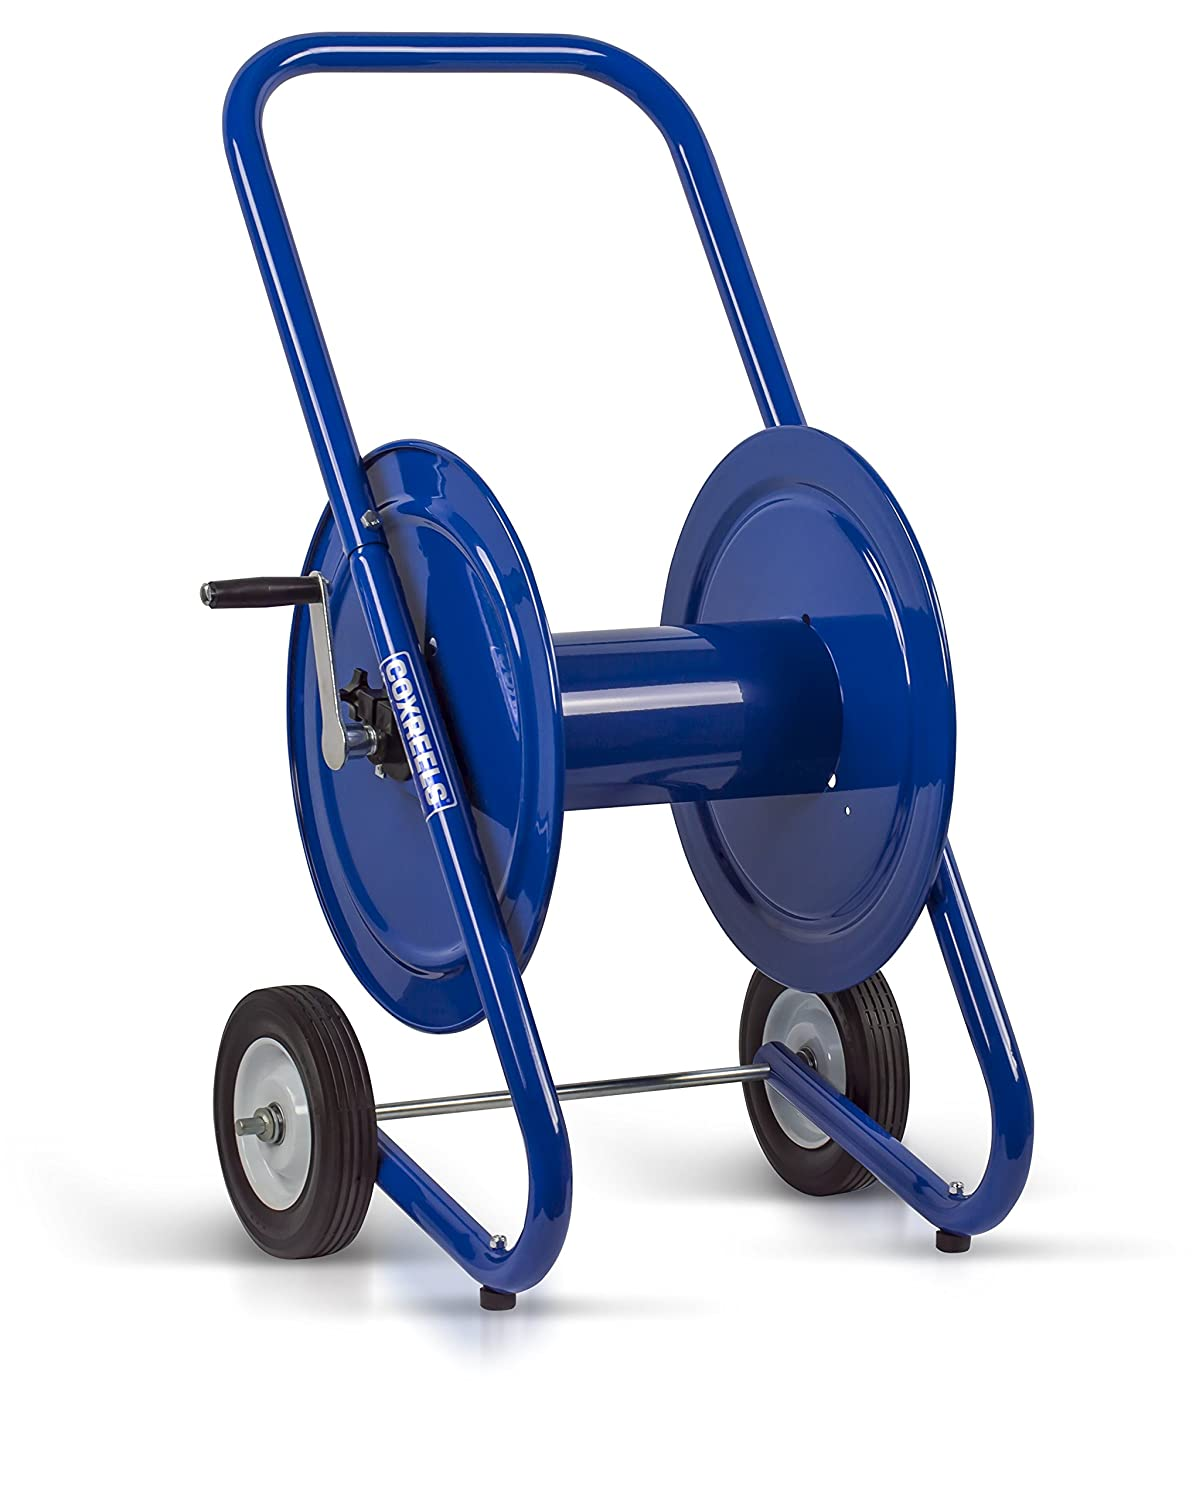 """Coxreels 117-4-225-DM Dolly-Mount Hose Reel with Wheels, 4,000 PSI, Holds 1/2"""" x 225' Length Hose, Hose Not Included, Blue"""